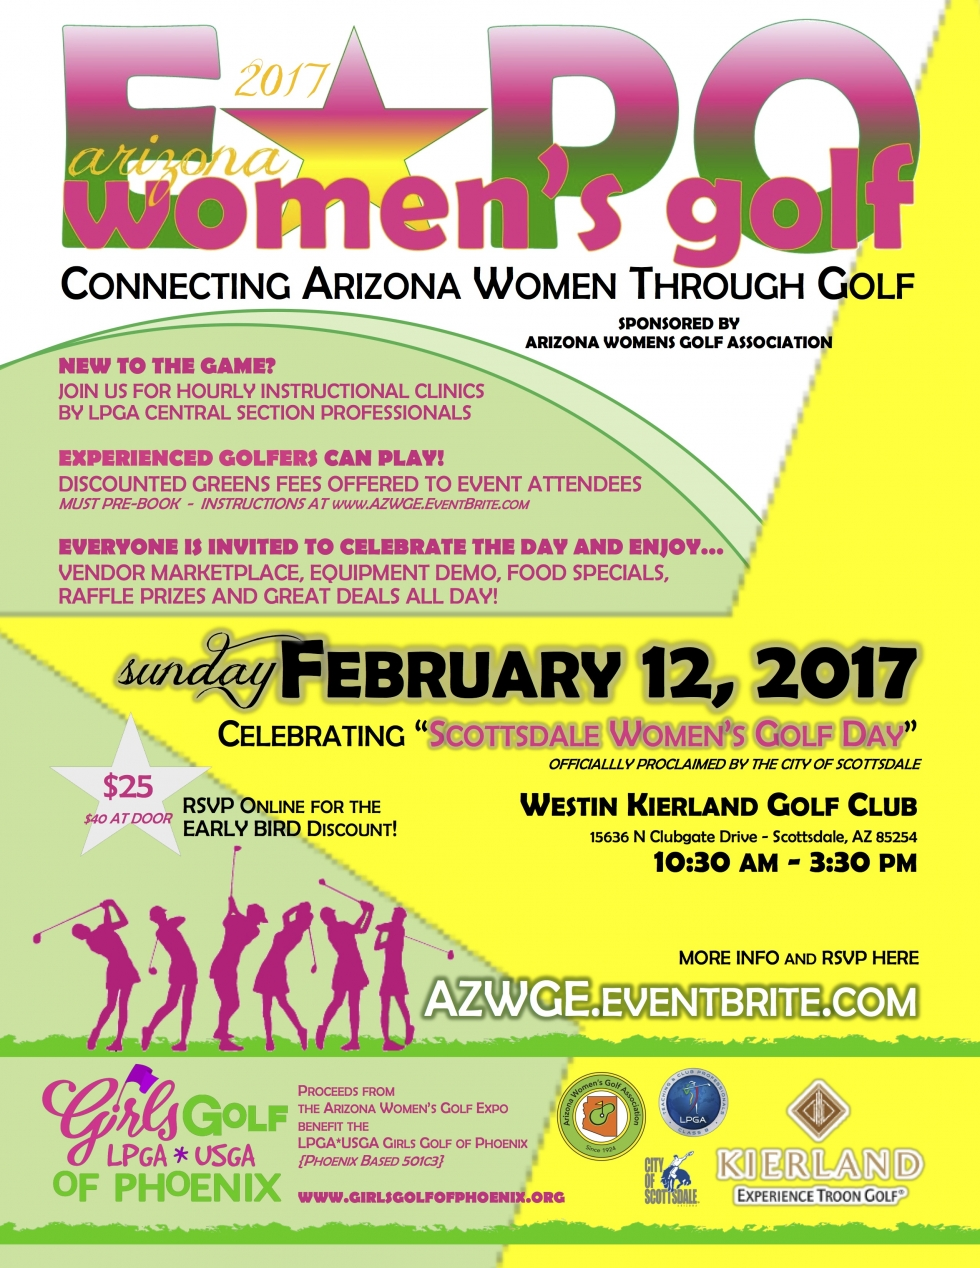 The 2017 Arizona Women's Golf Expo is Coming to the Westin Kierland